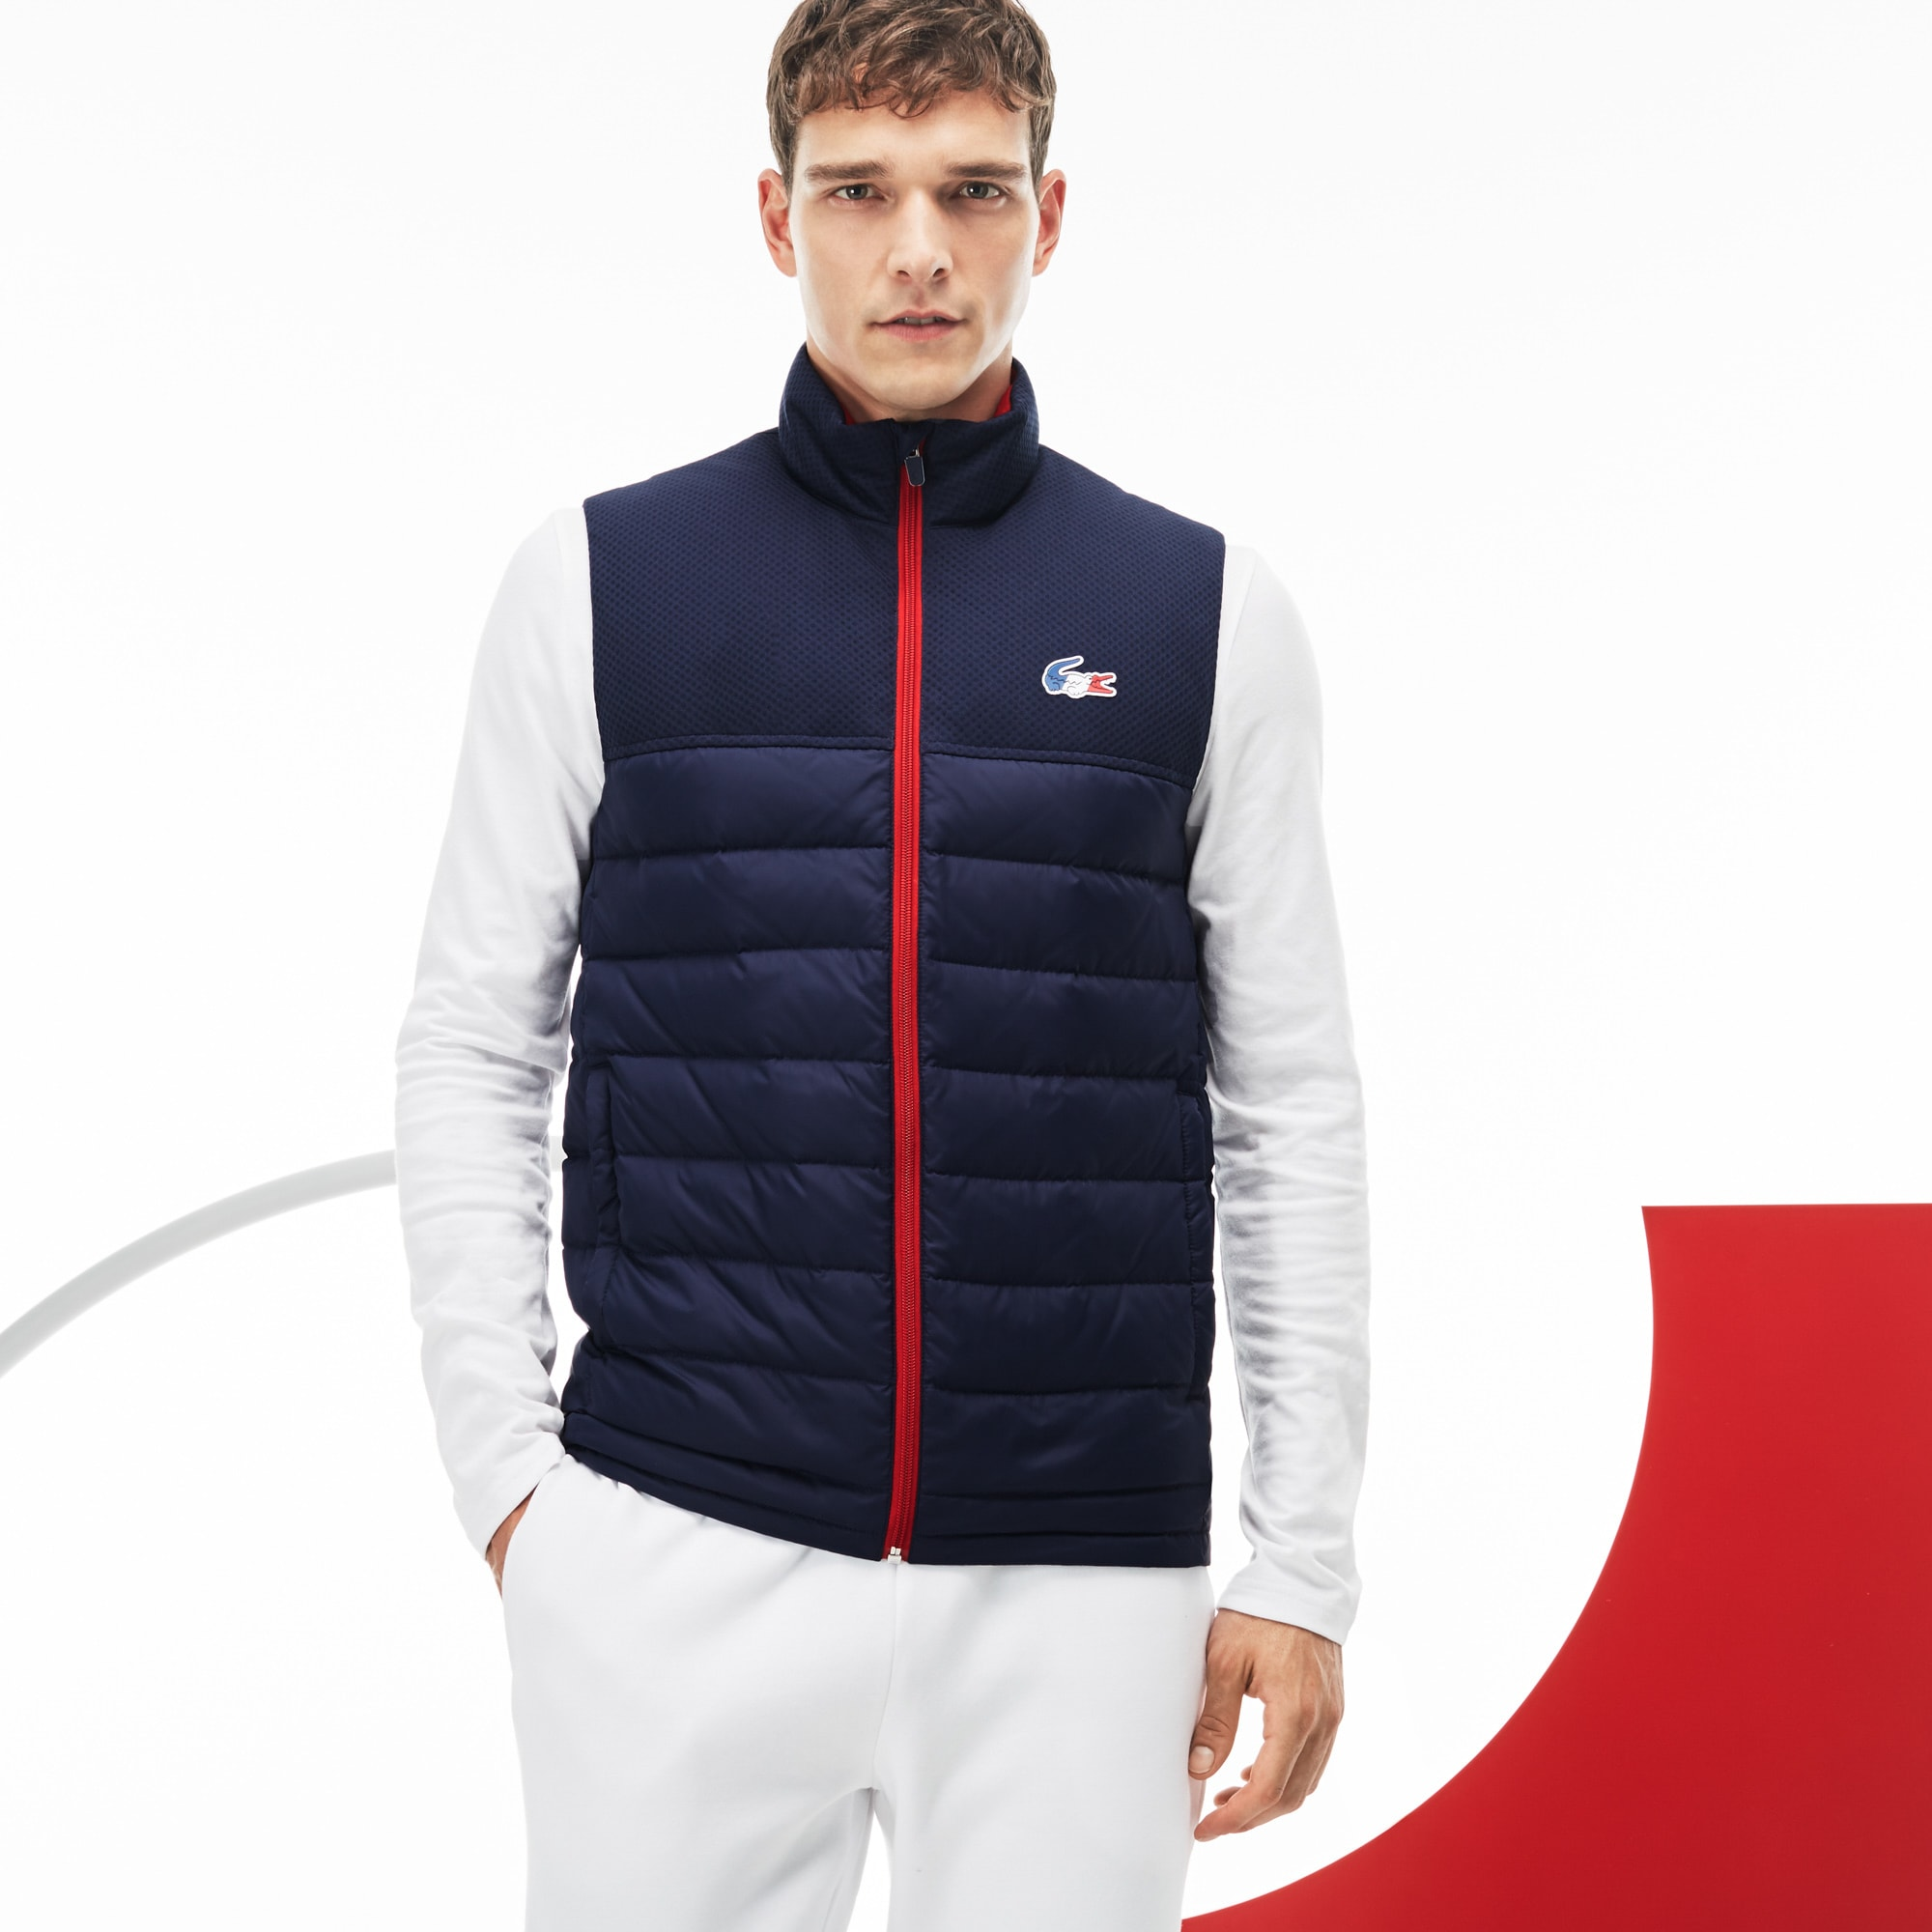 Colete Lacoste French Sporting Spirit Edition Masculino